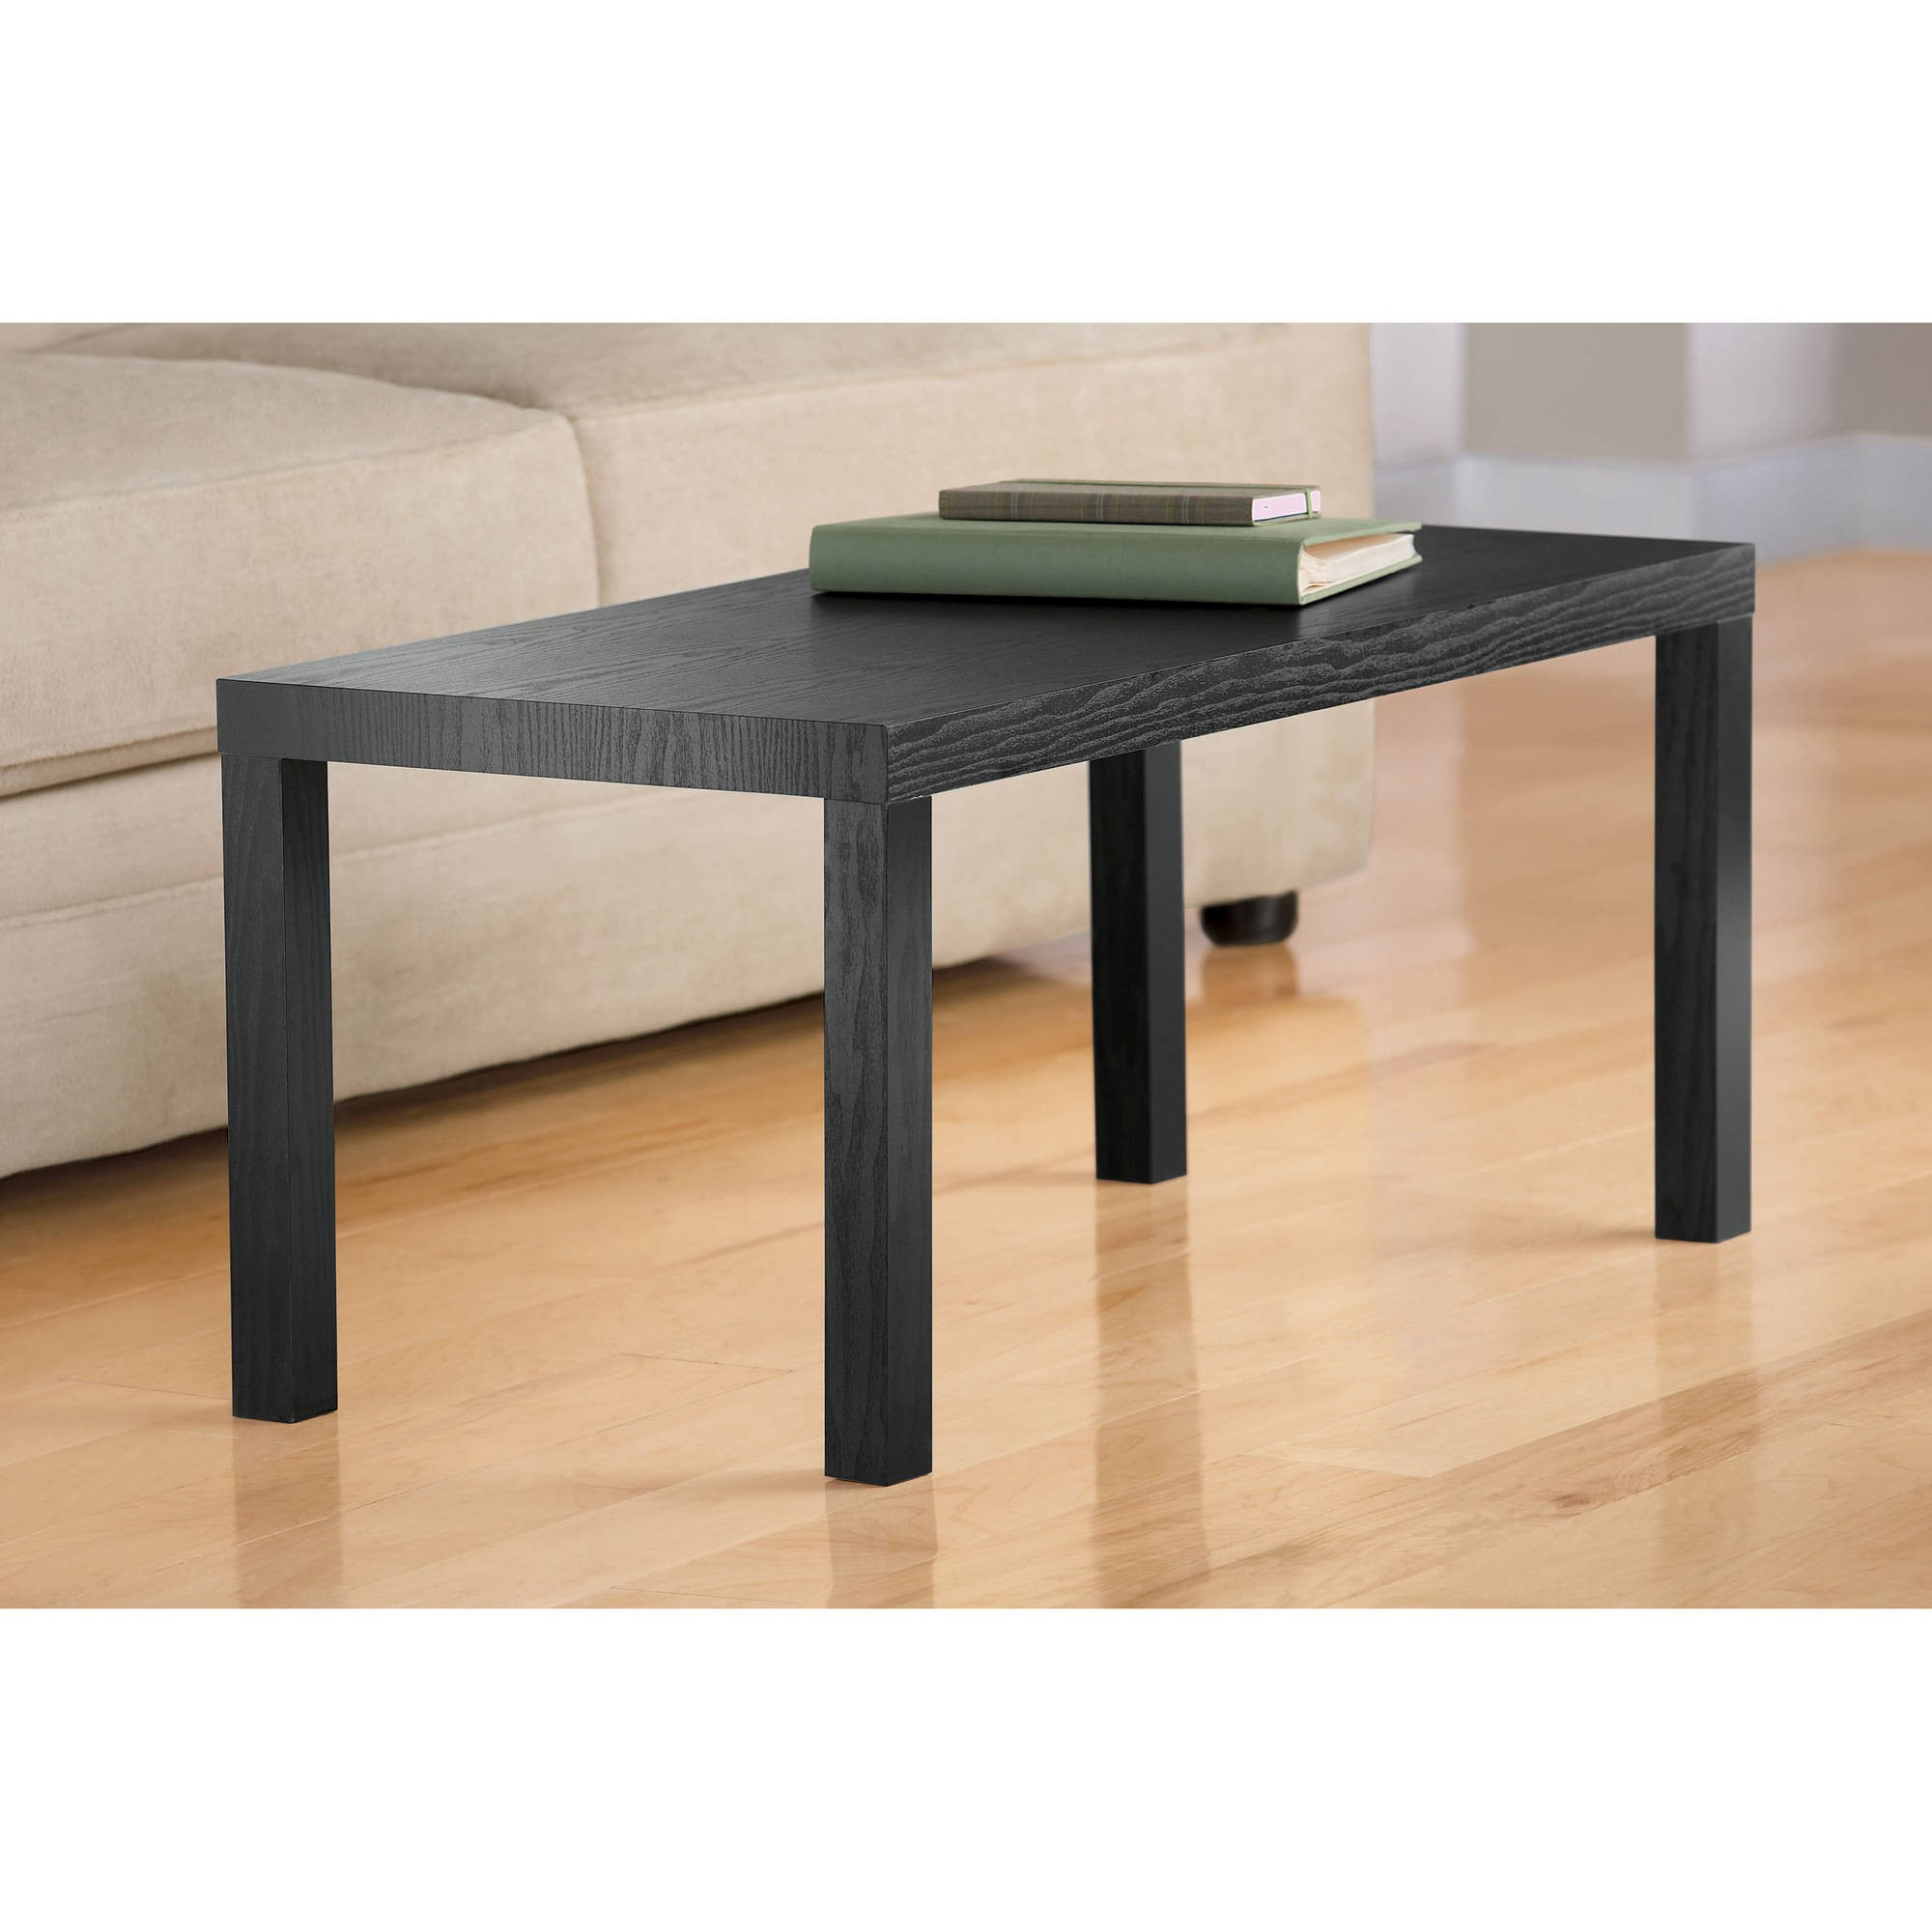 Sofa Tables at Walmart Incredible Dhp Parsons Coffee Table Multiple Colors Walmart Photograph